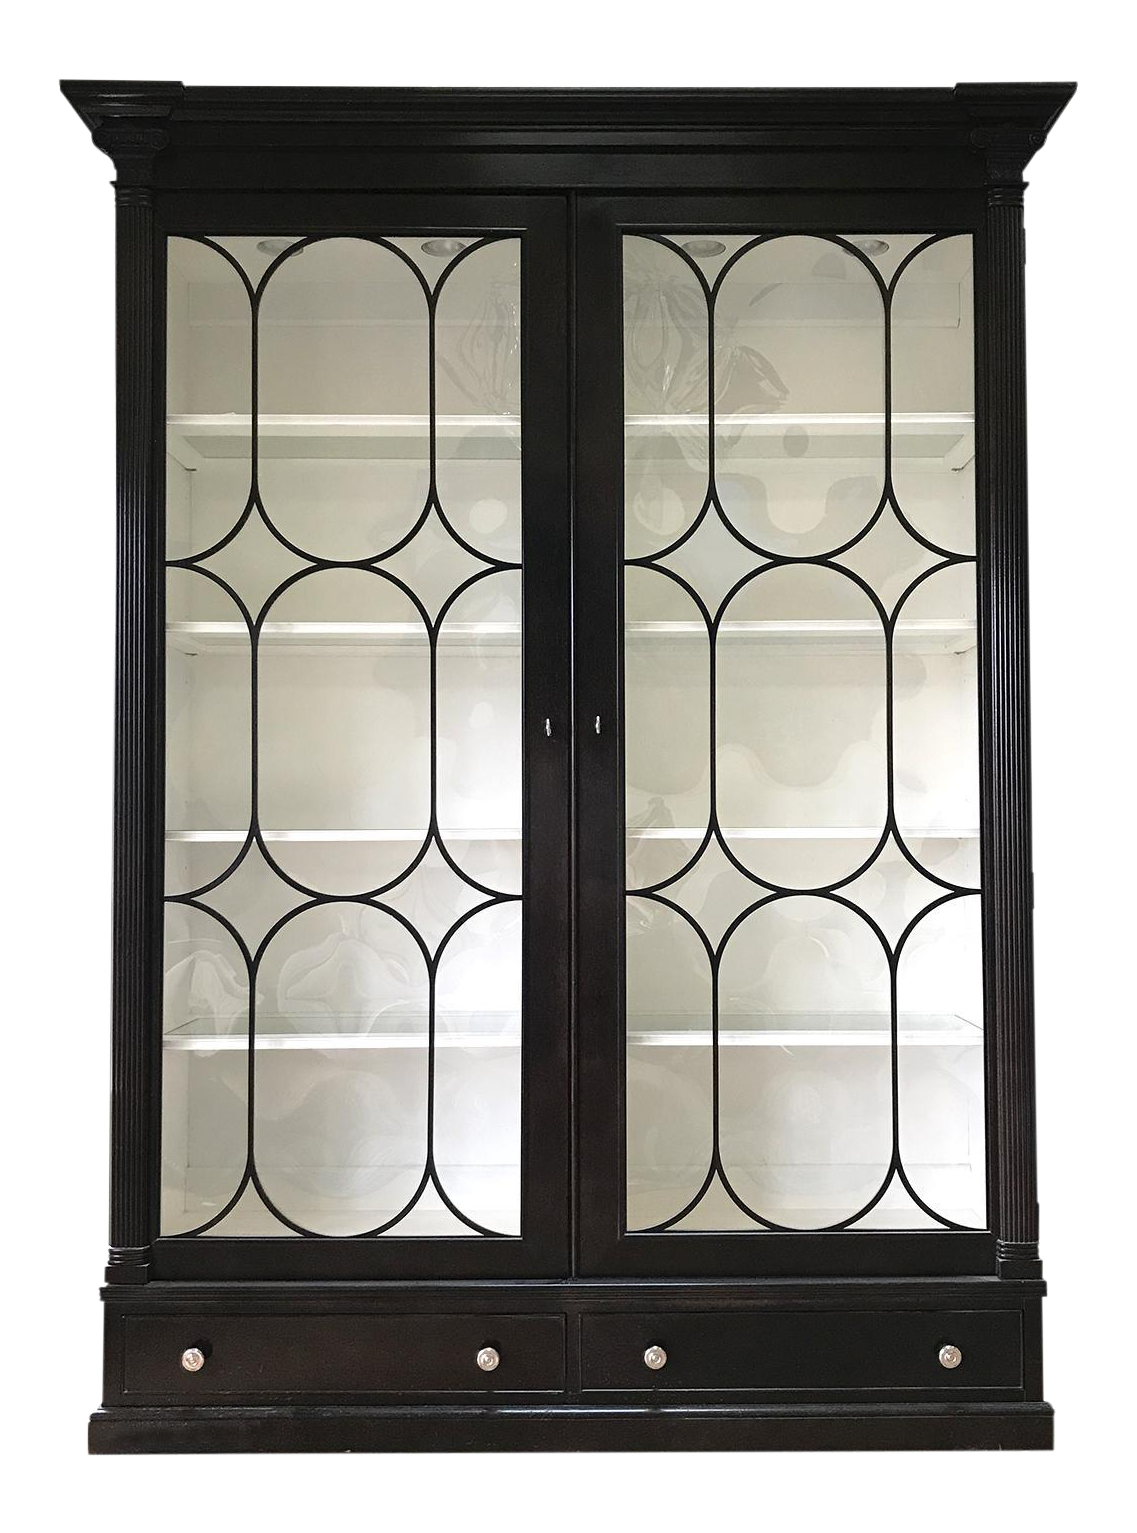 Ralph Lauren Bel Air China Cabinet Polished Black Finish This Dramatic Cabinet Features Oversized Figure Eight Mul China Cabinet Cabinet Black China Cabinet Black china cabinet with glass doors